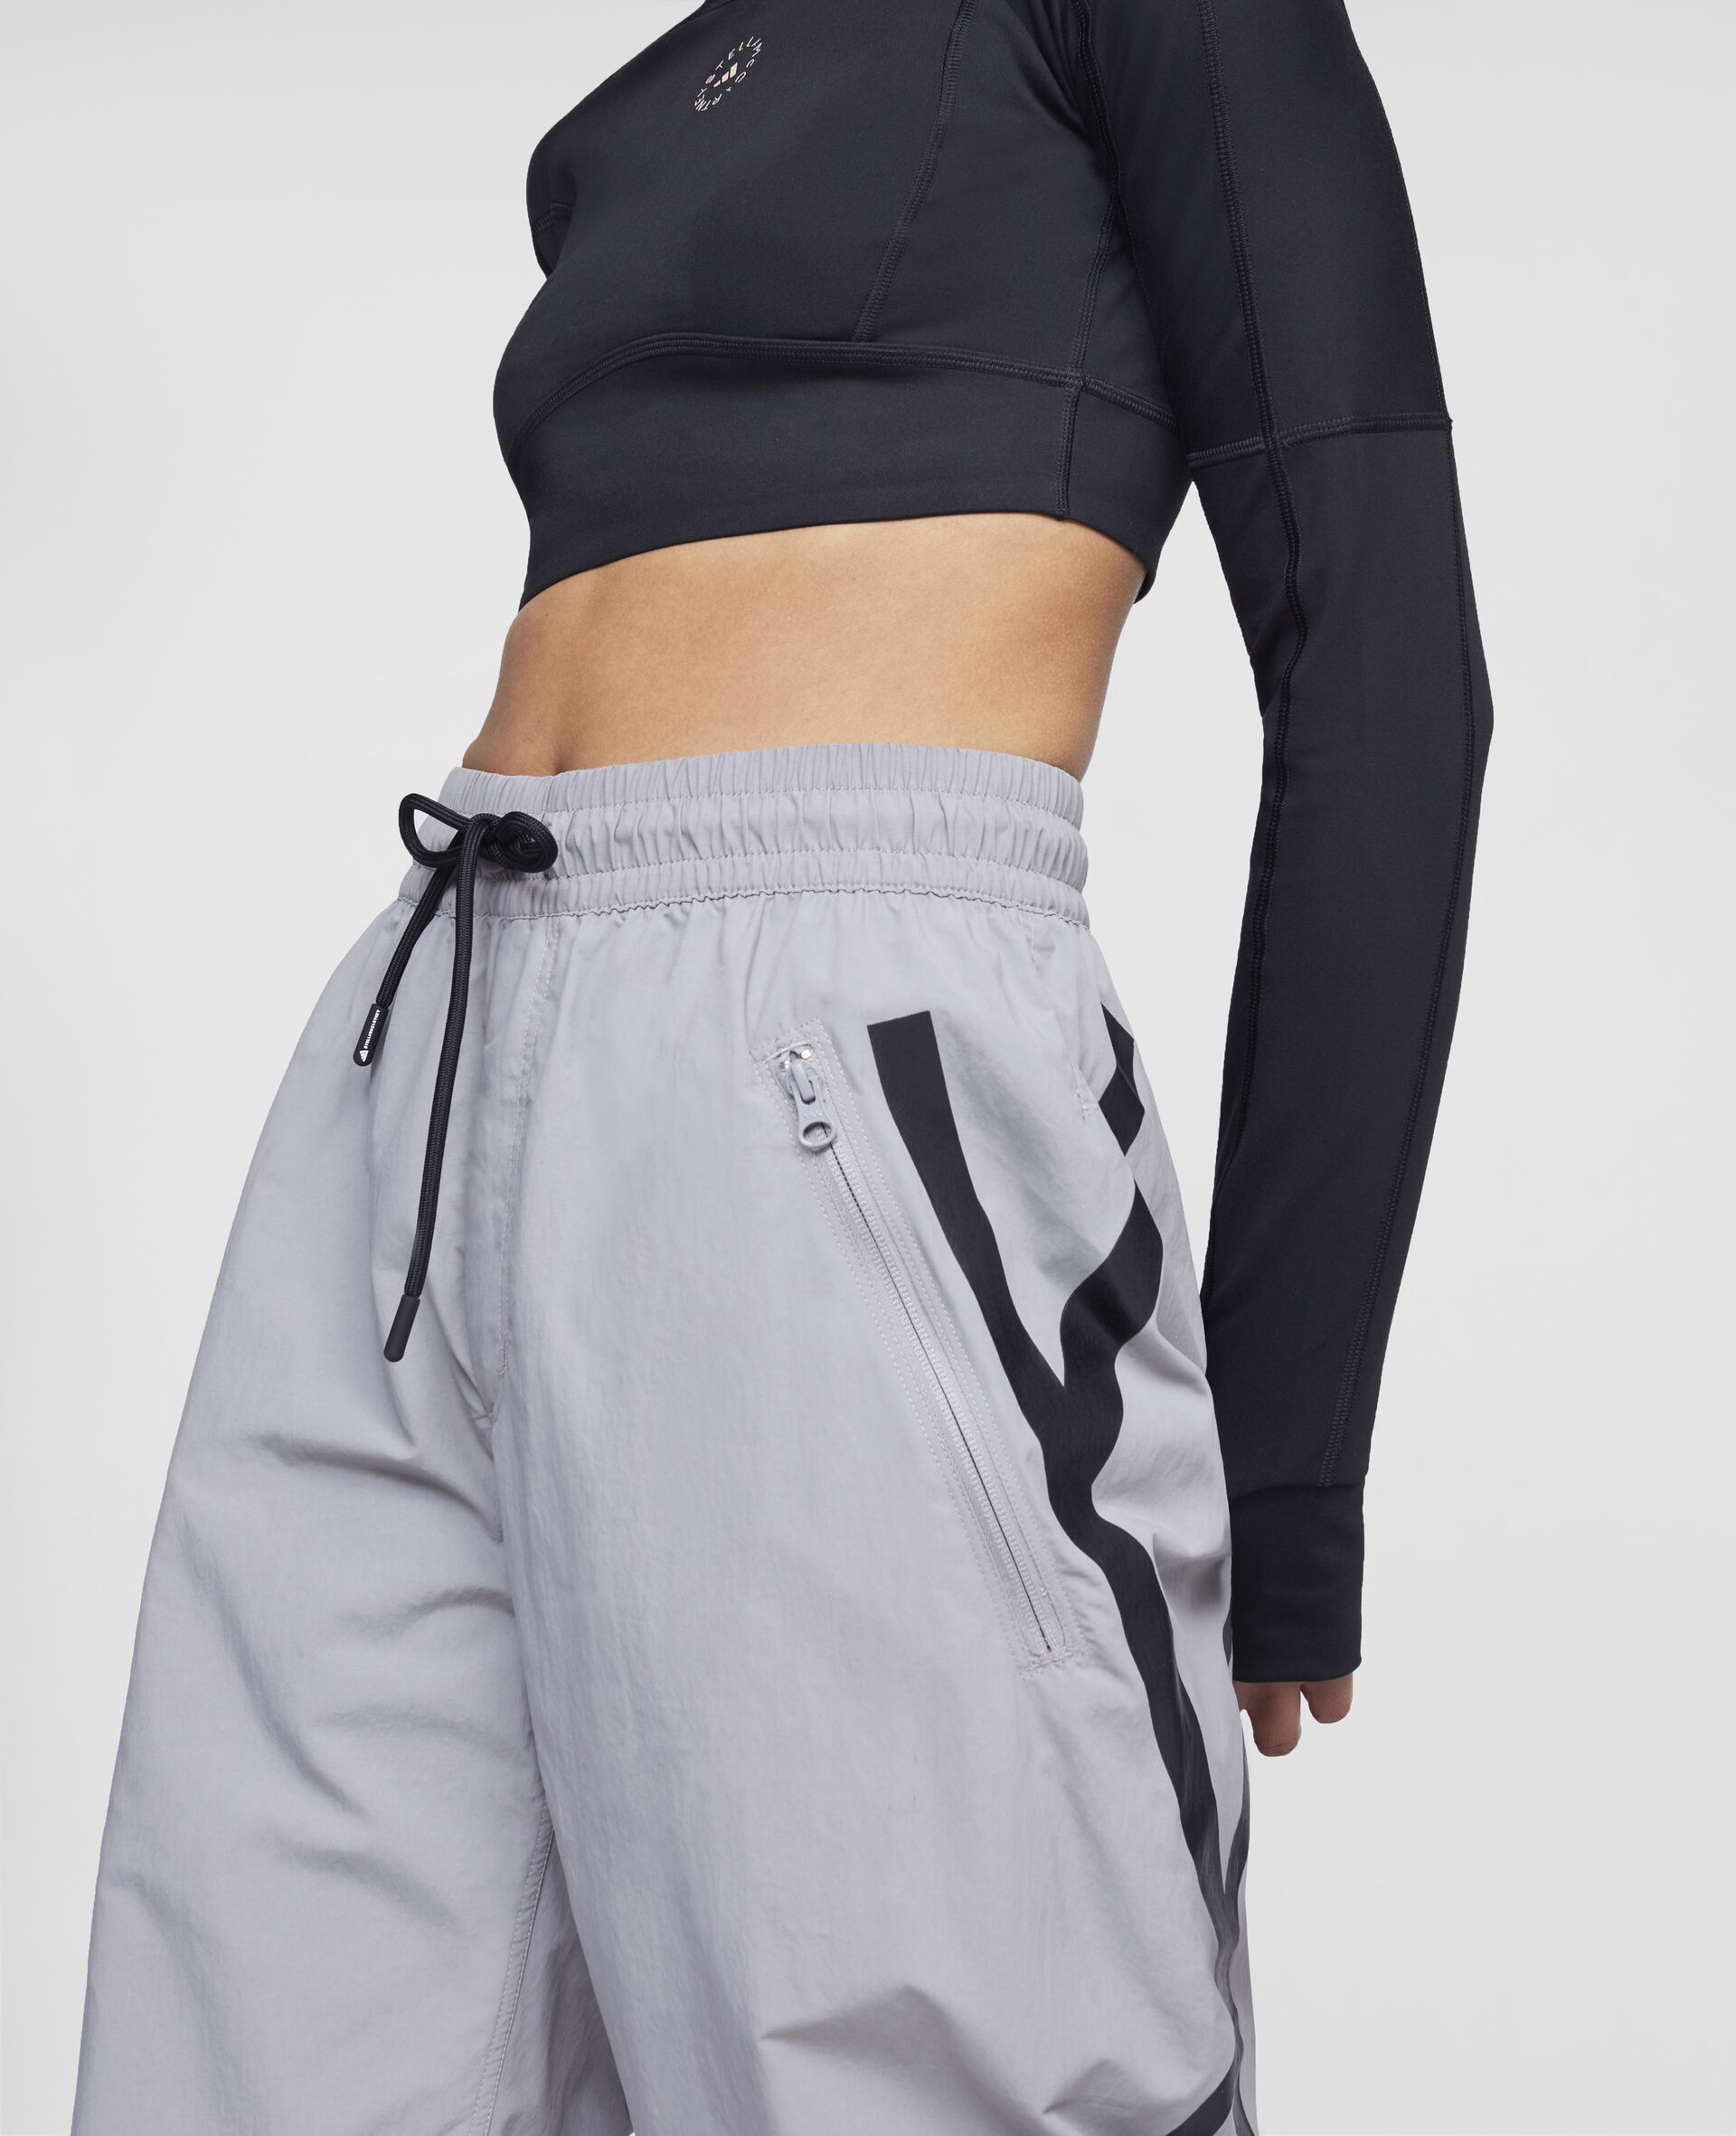 Grey Training Trousers-Grey-large image number 3